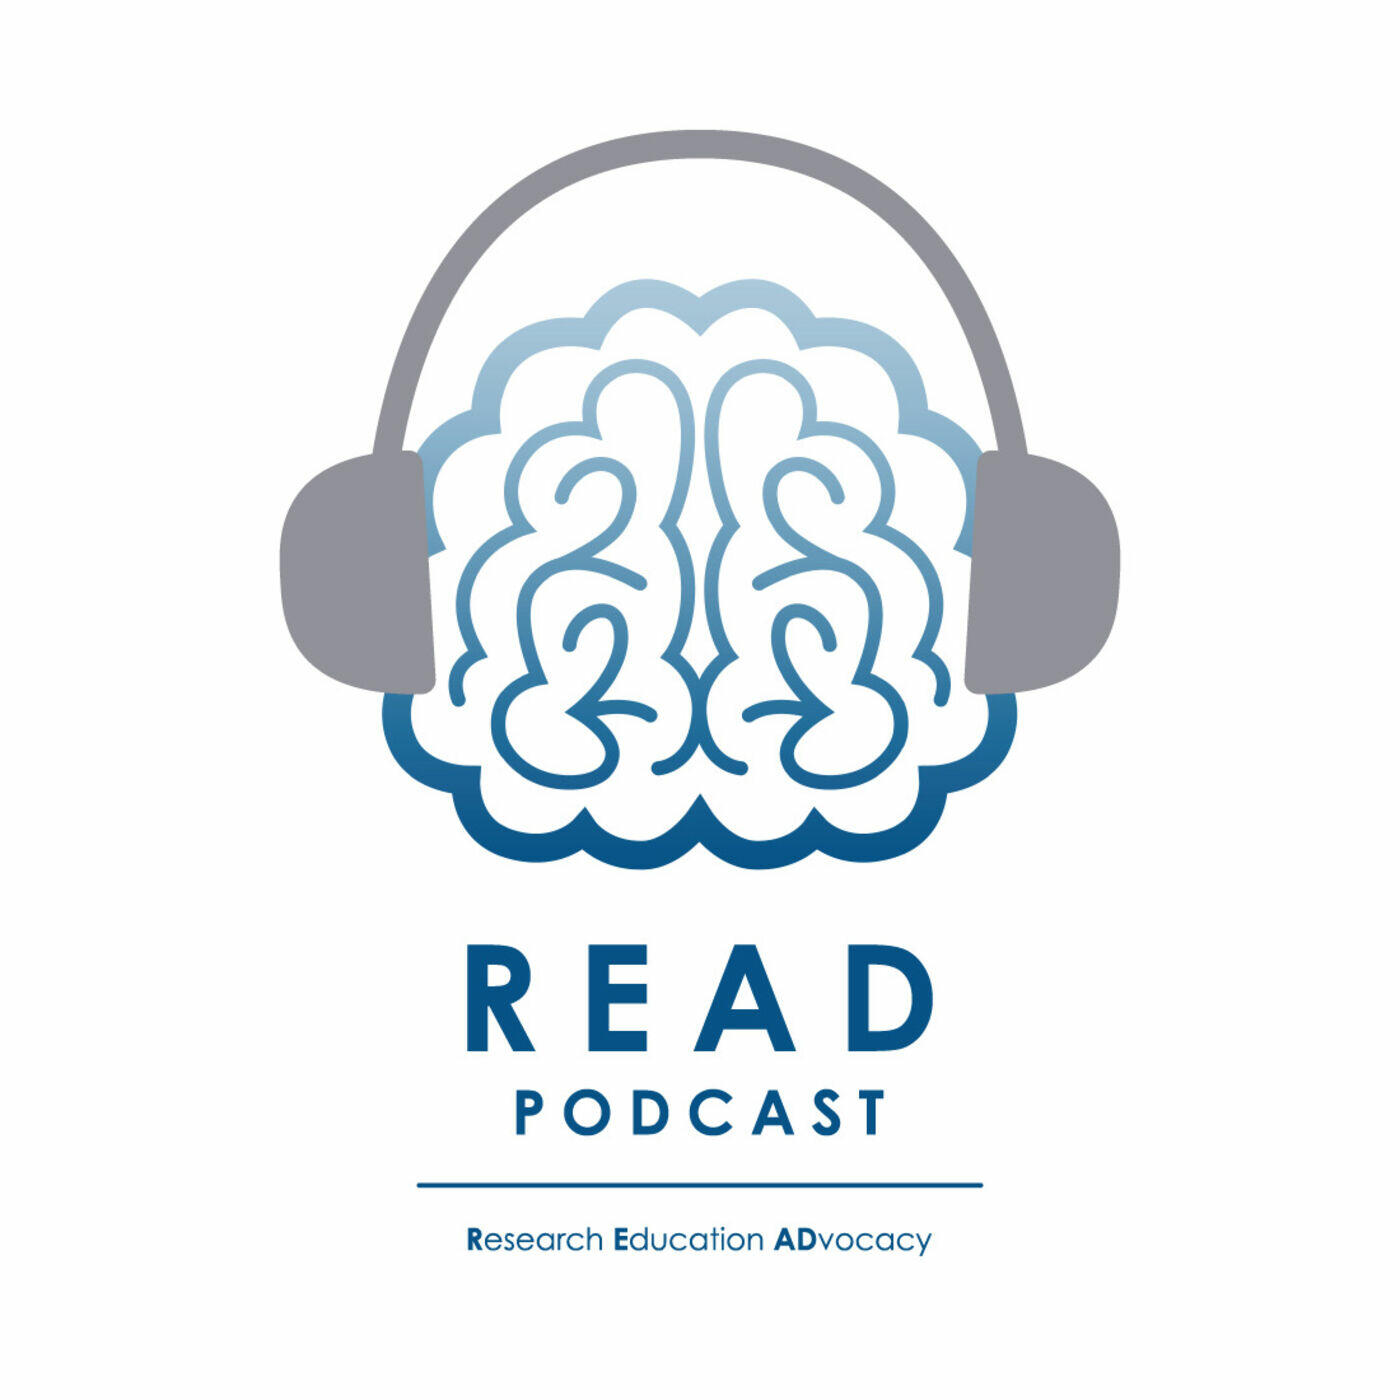 READ: The Research Education ADvocacy Podcast